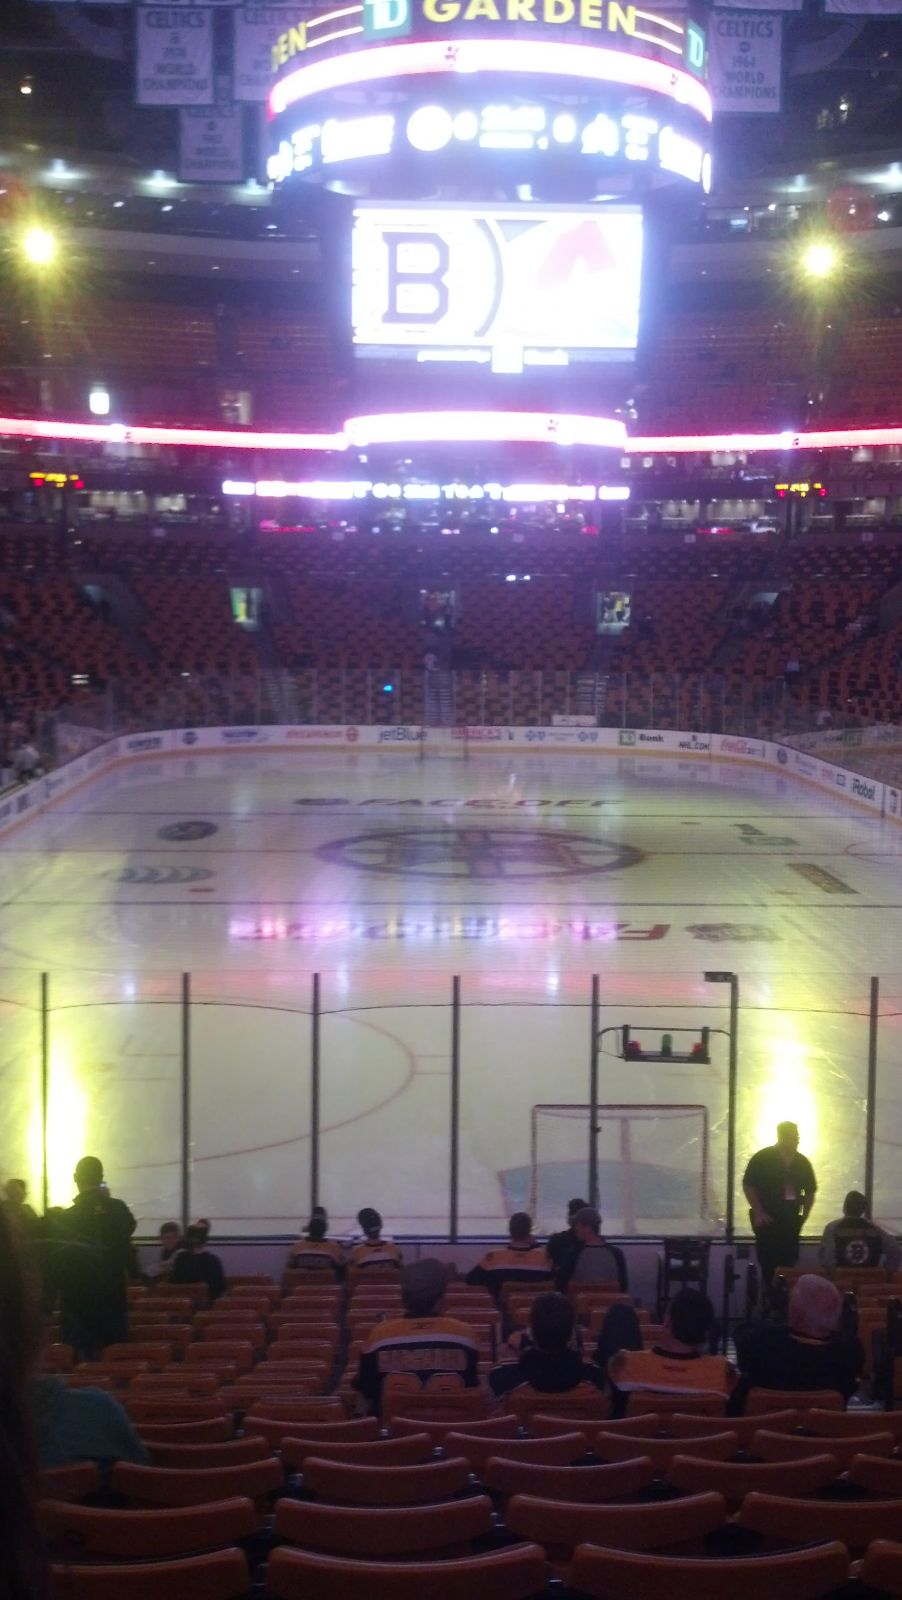 Boston Bruins Seat View for TD Garden Loge 18, Row 19, Seat 3